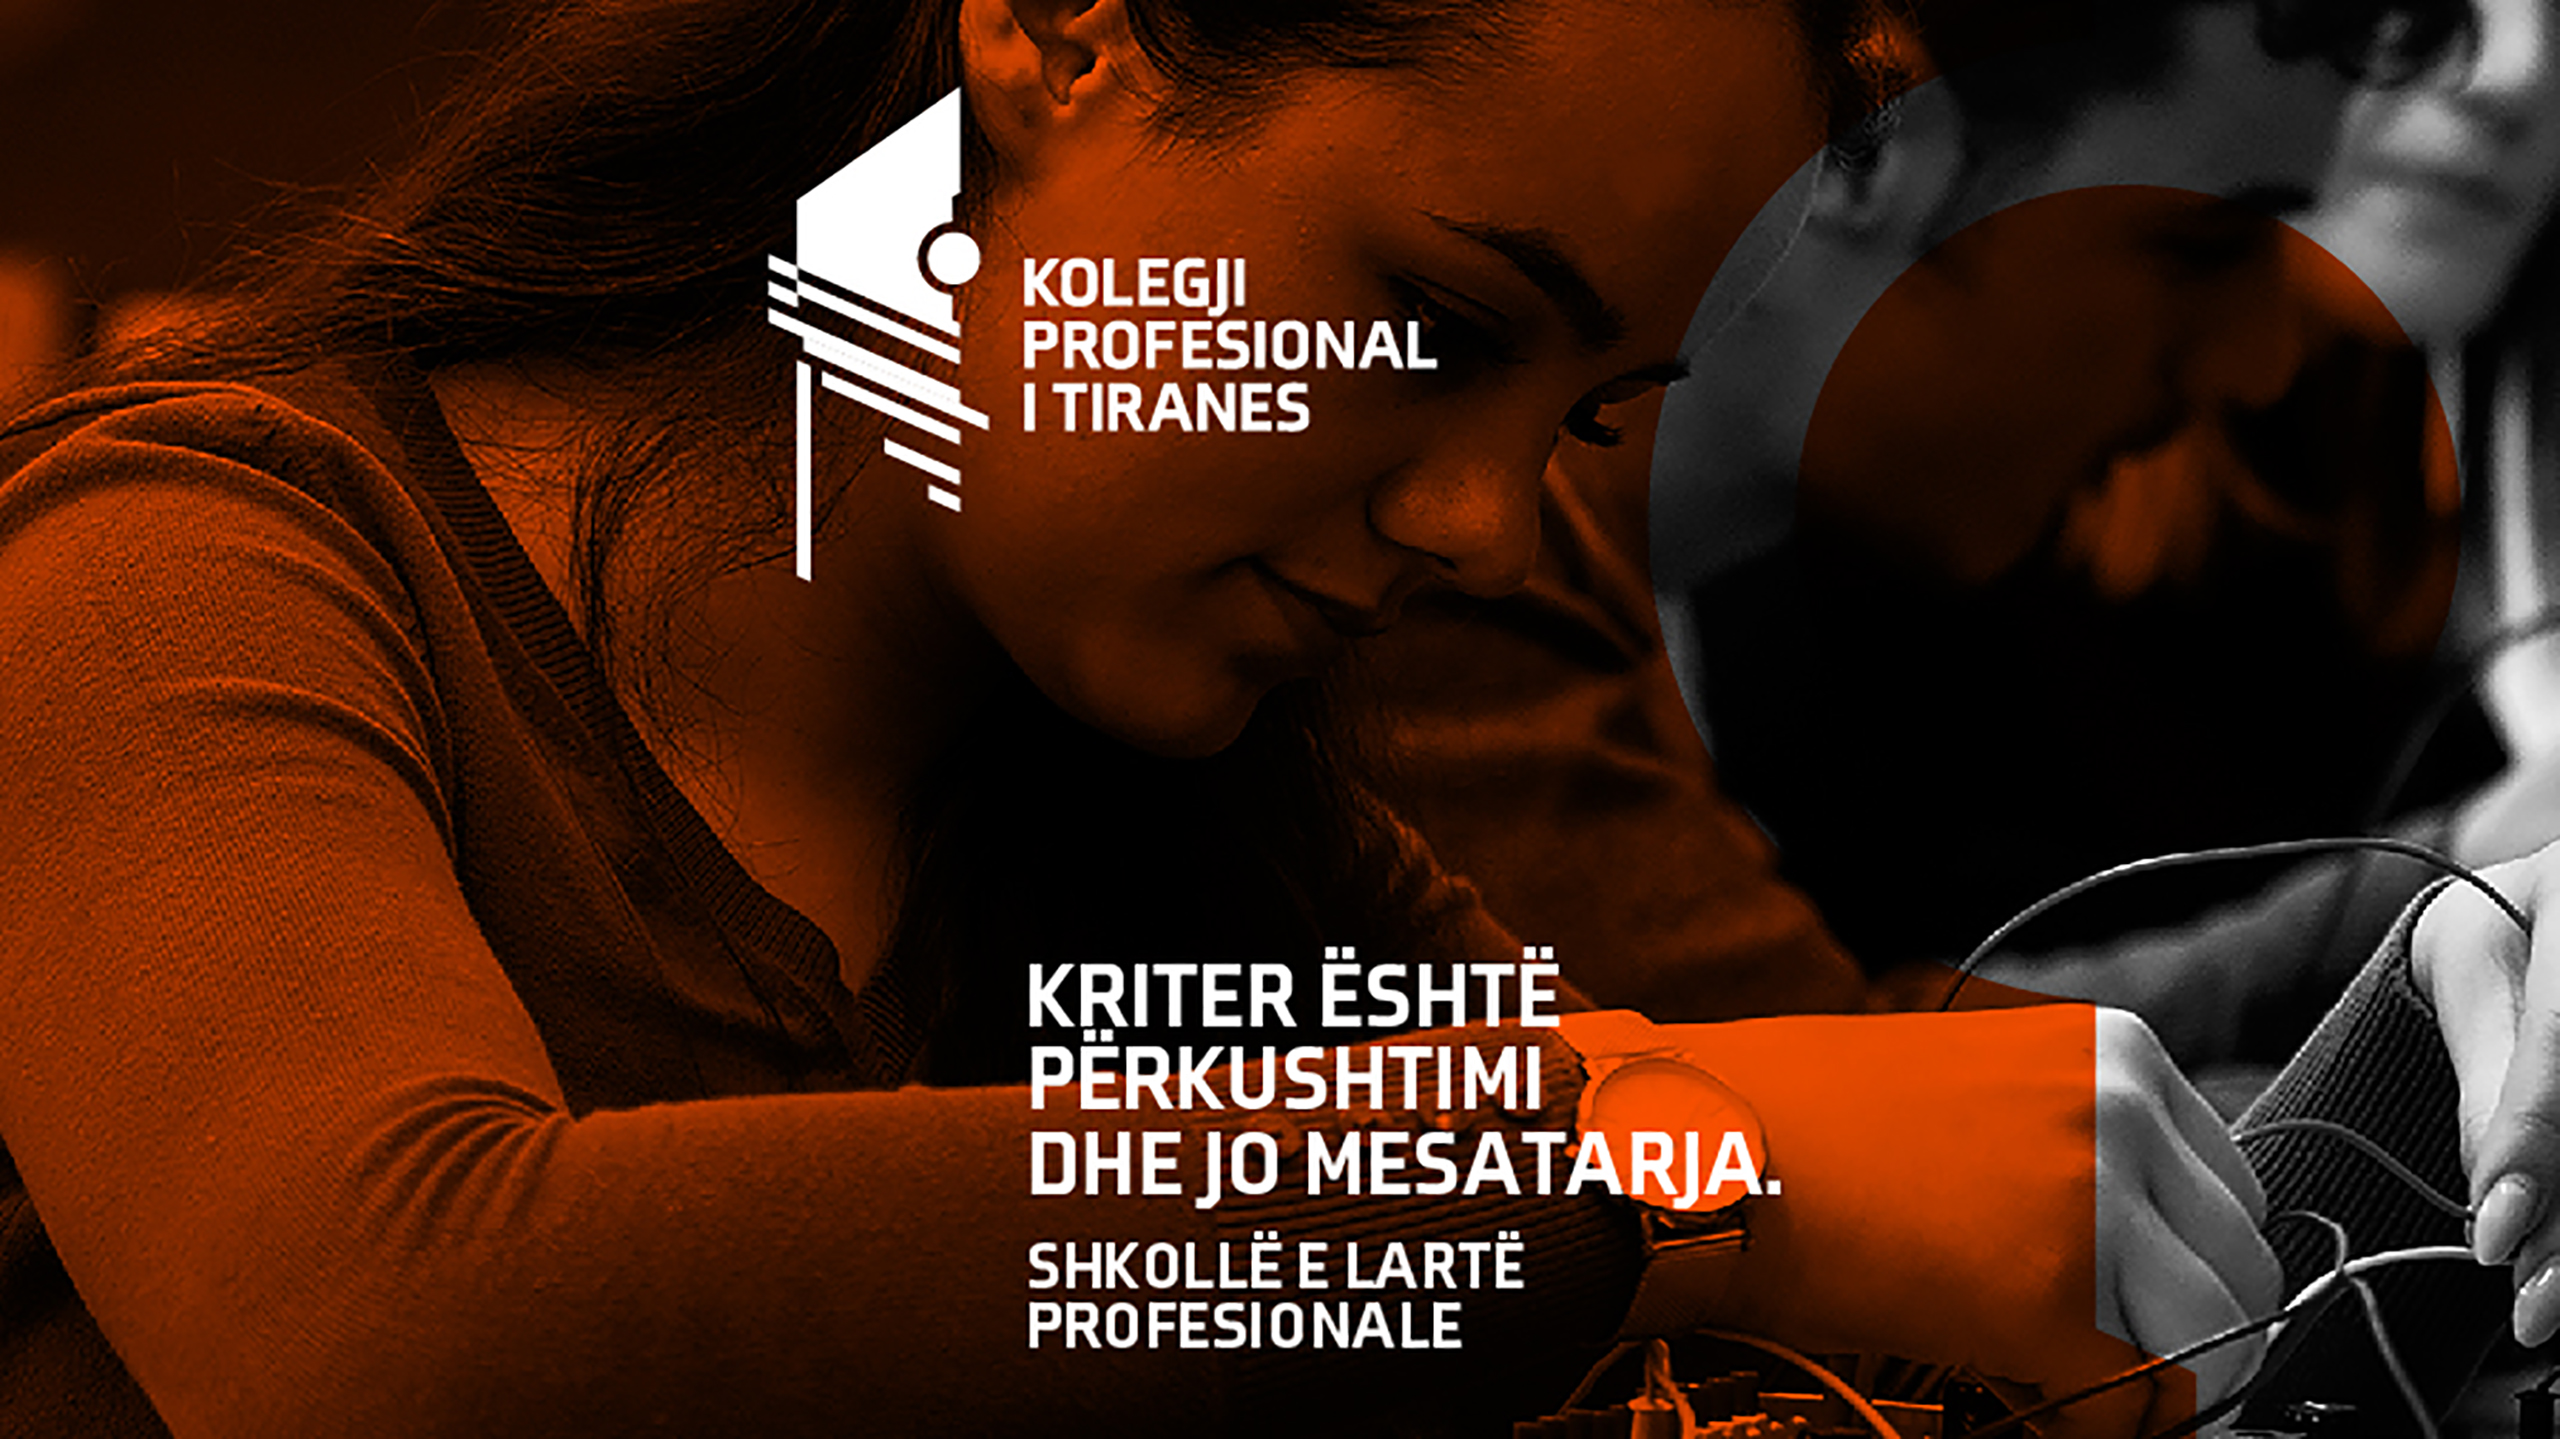 The Professional College of Tirana approaches students with a new integrated communication campaign.